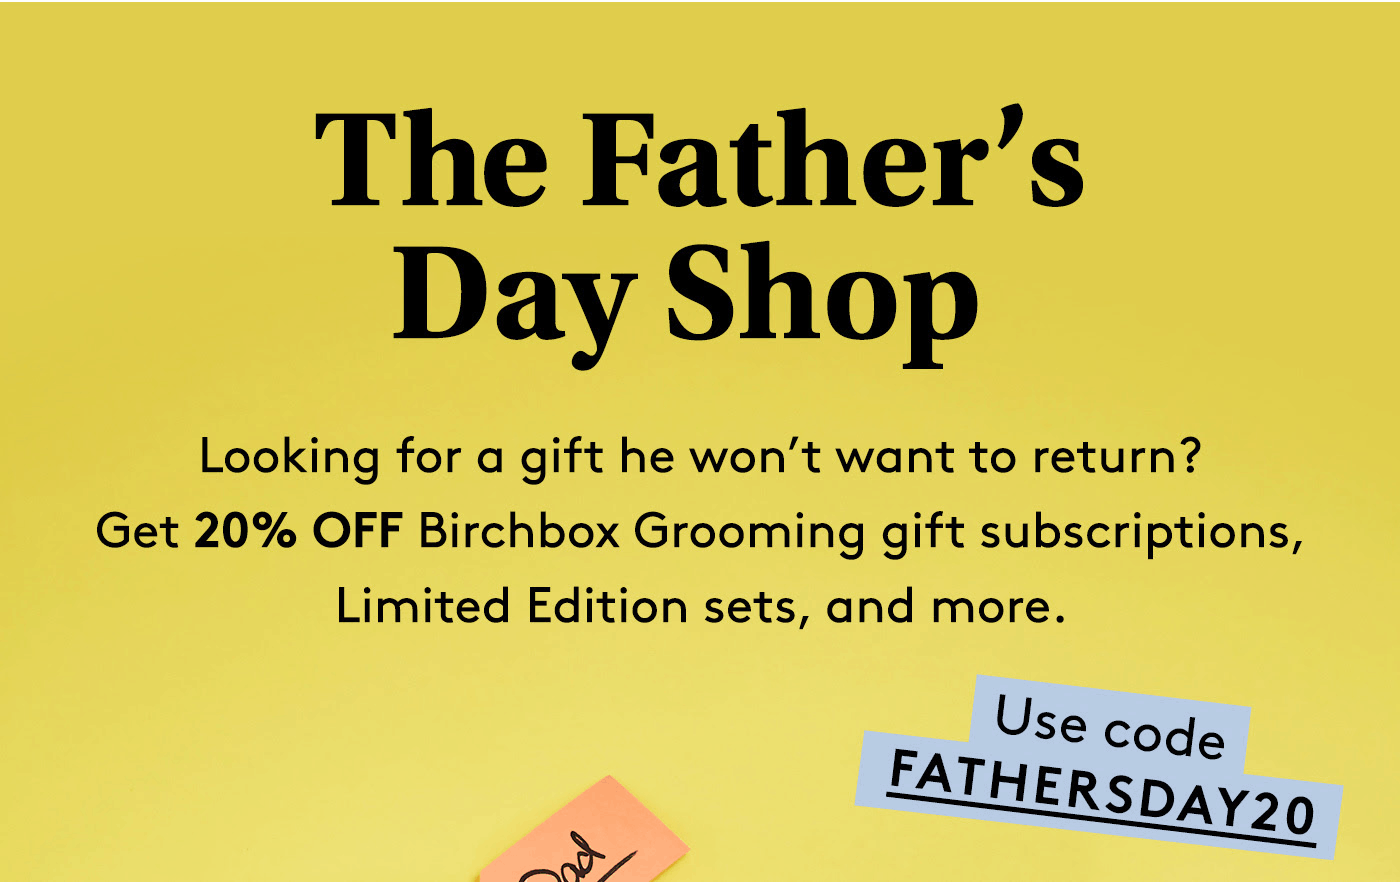 Birchbox Grooming Sale: Get 20% Off Subscriptions + Father's Day Shop!